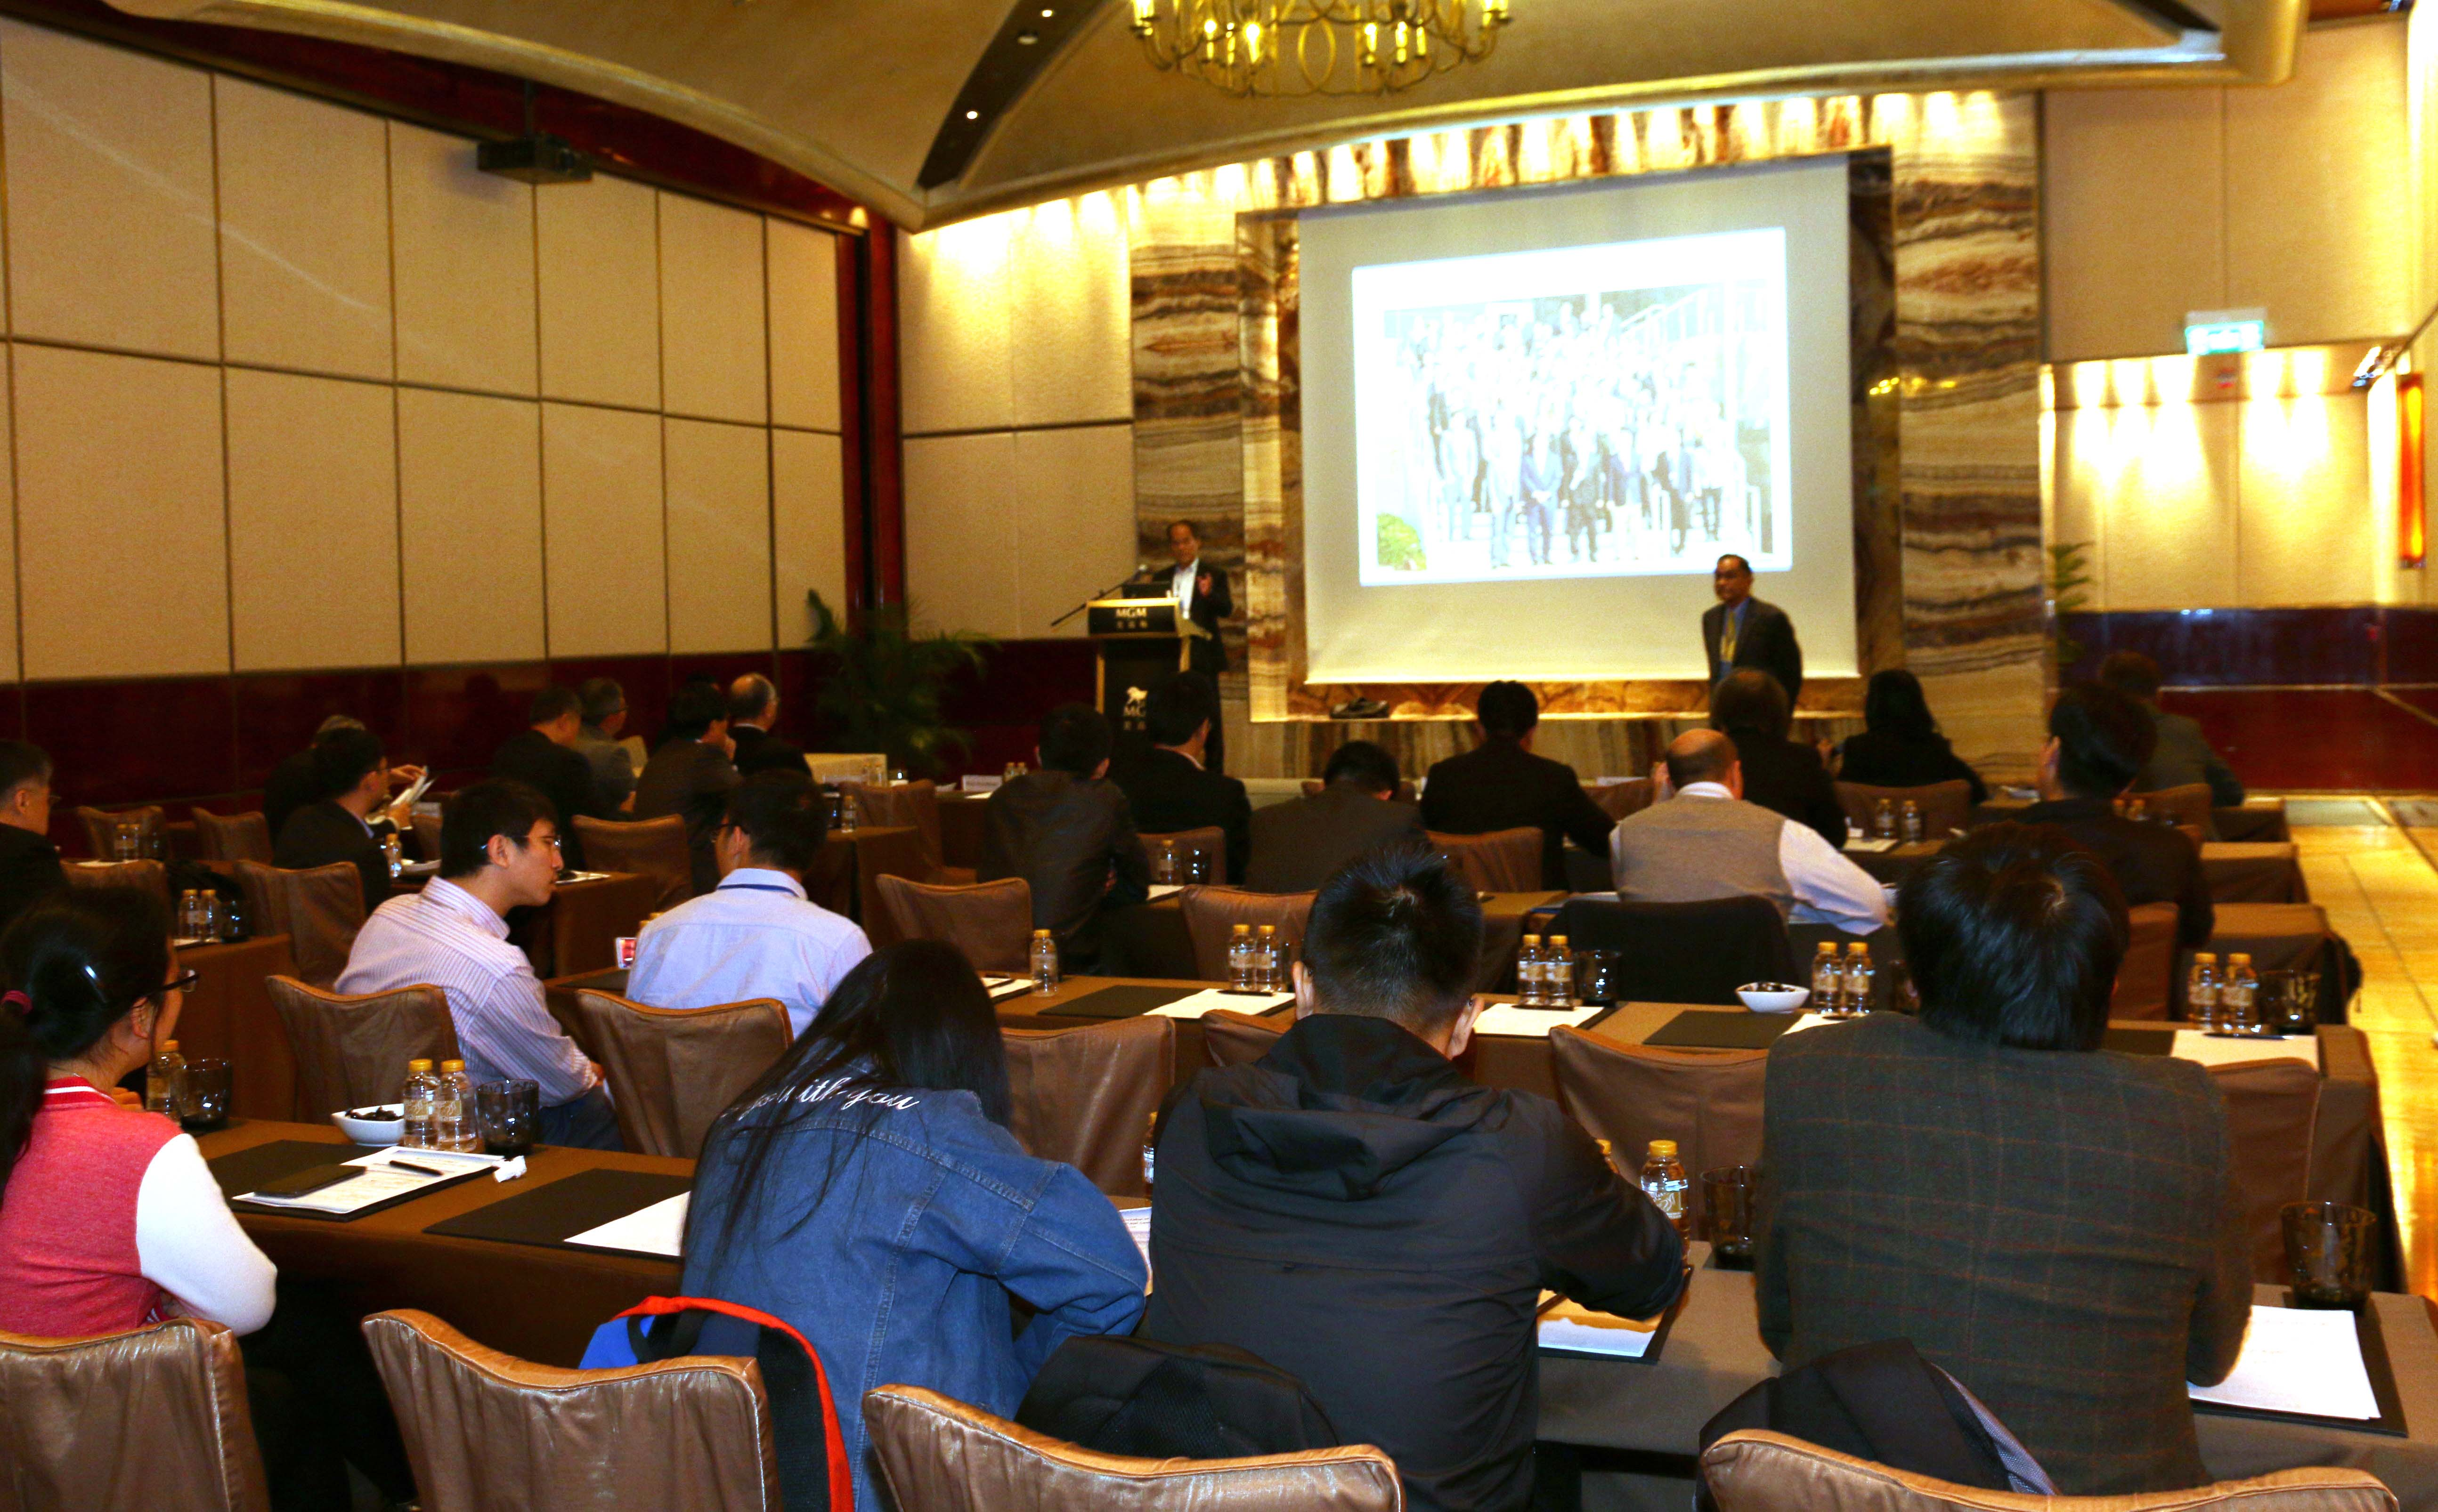 The International Workshop on Solid-State Lighting of LED and Laser Diode